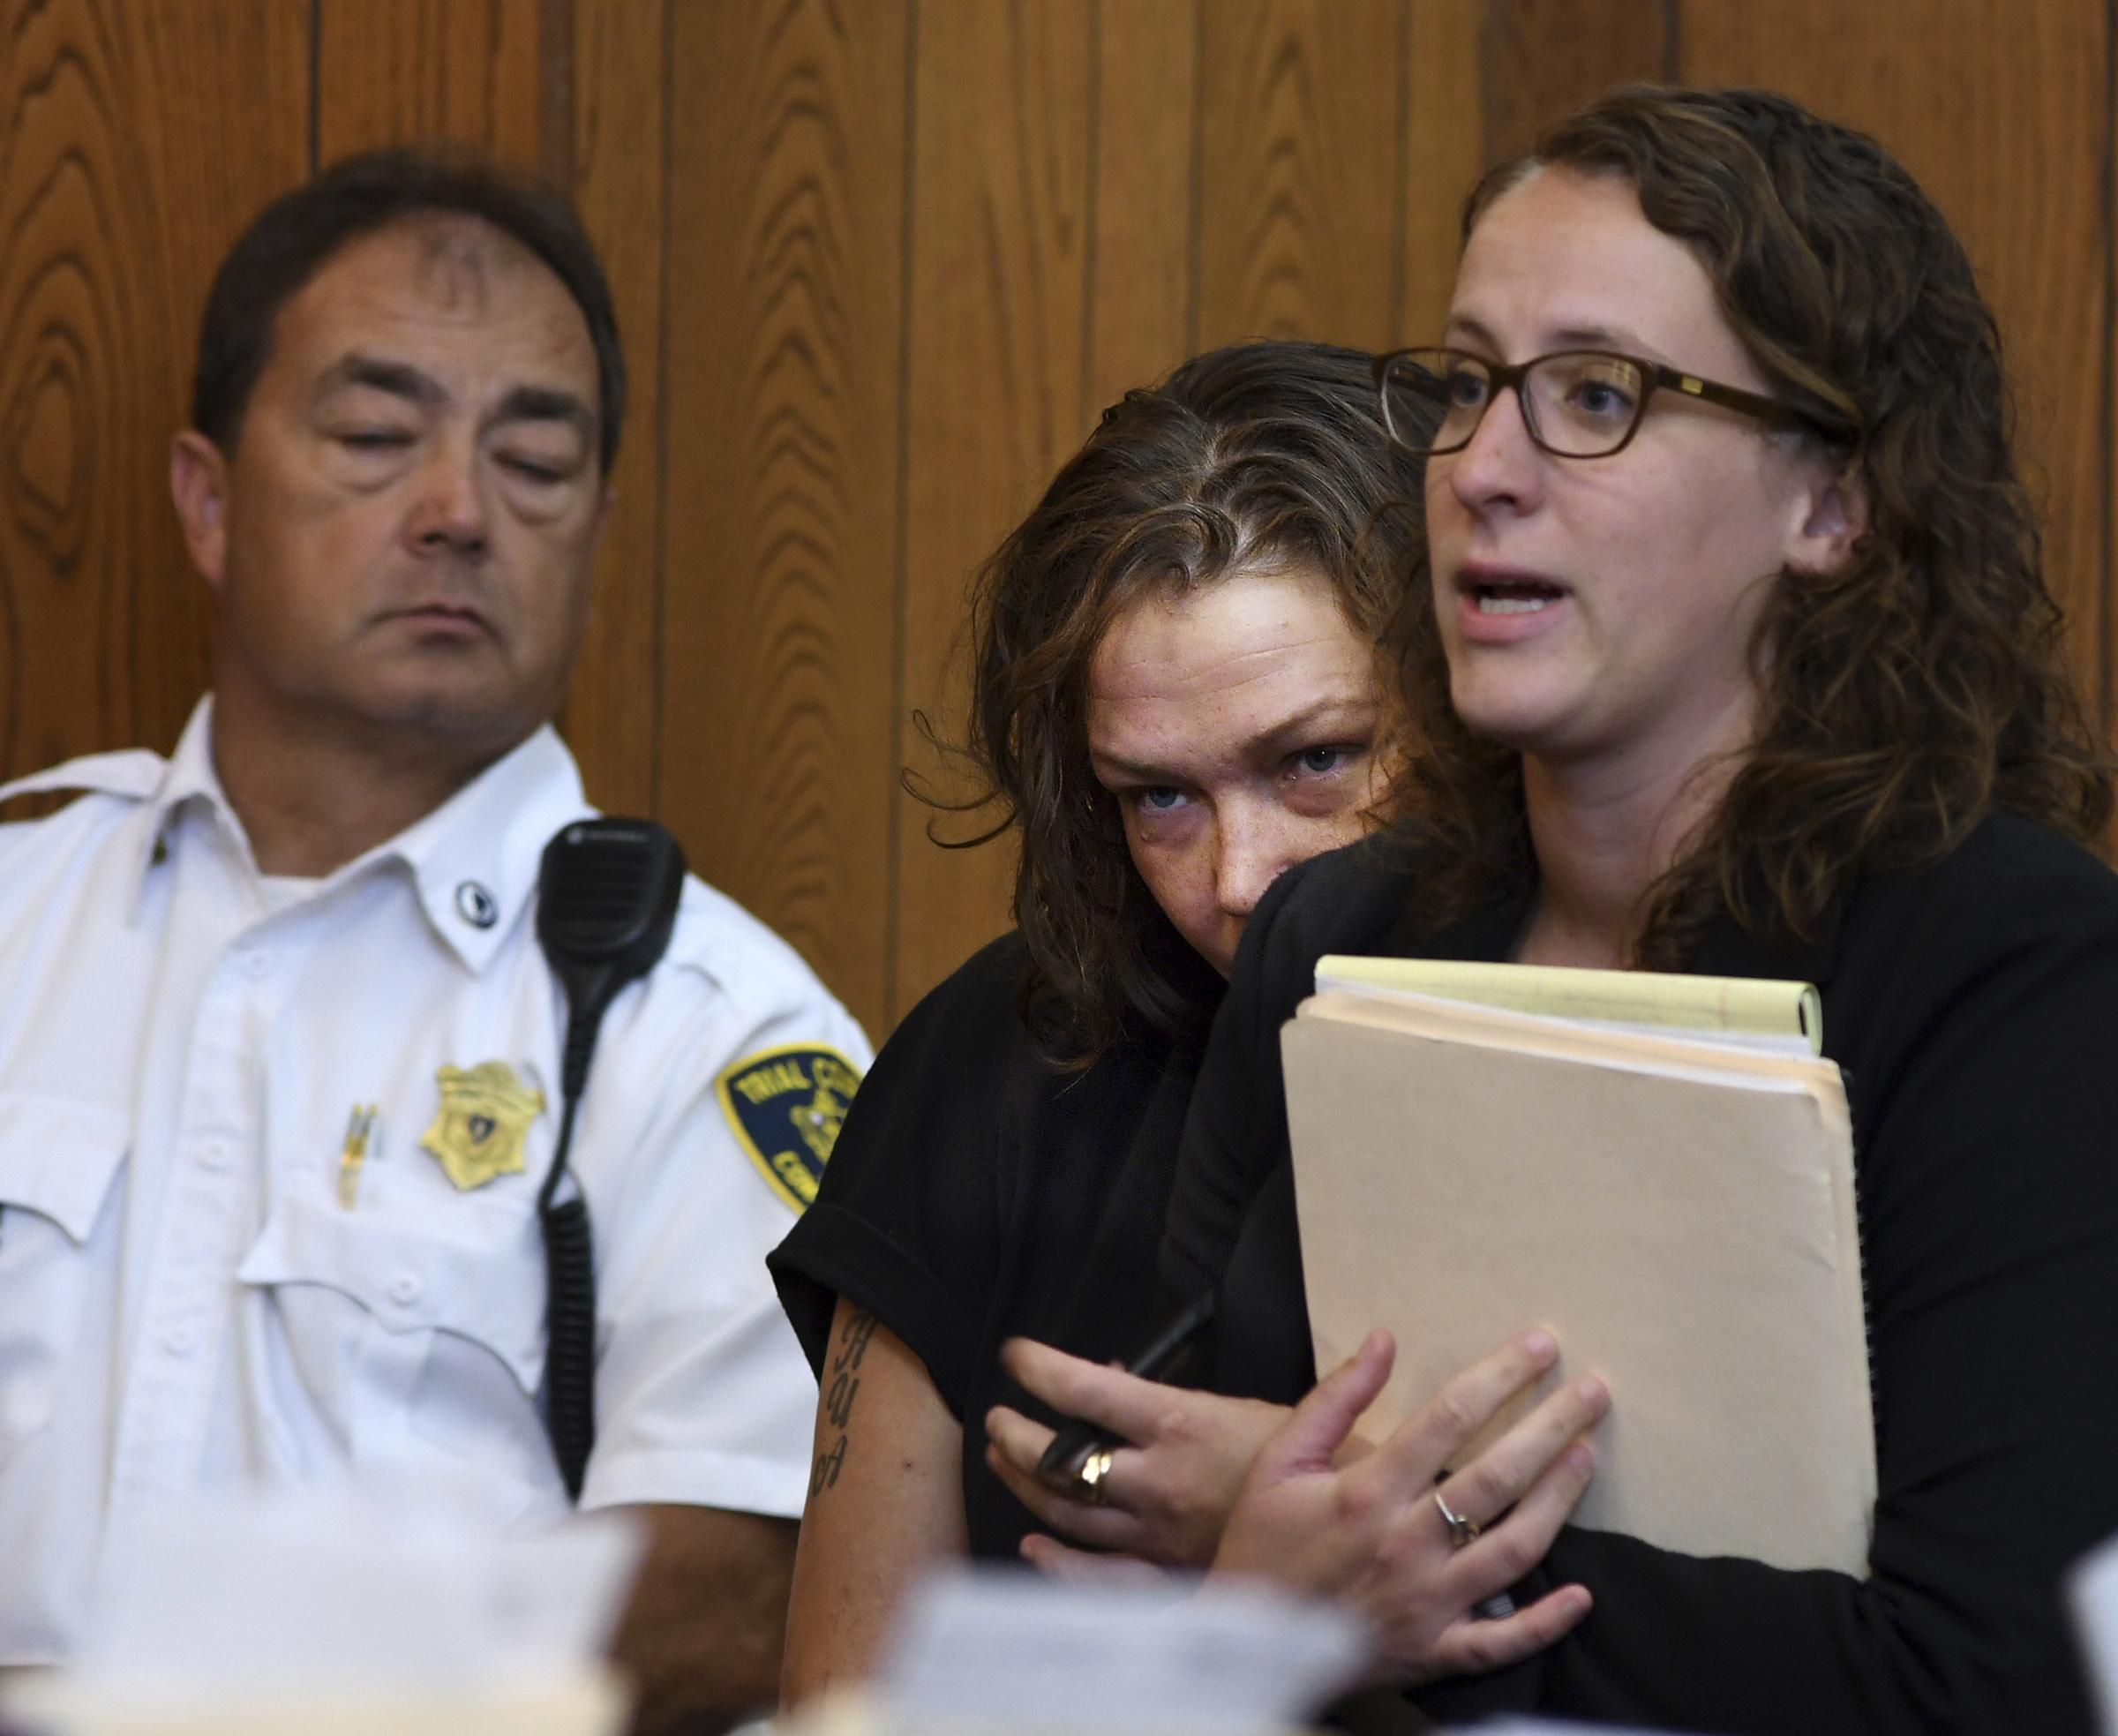 Leeann Rickheit, visible in center with attorney Hillary Knight at right. [T&G Staff/Christine Peterson]